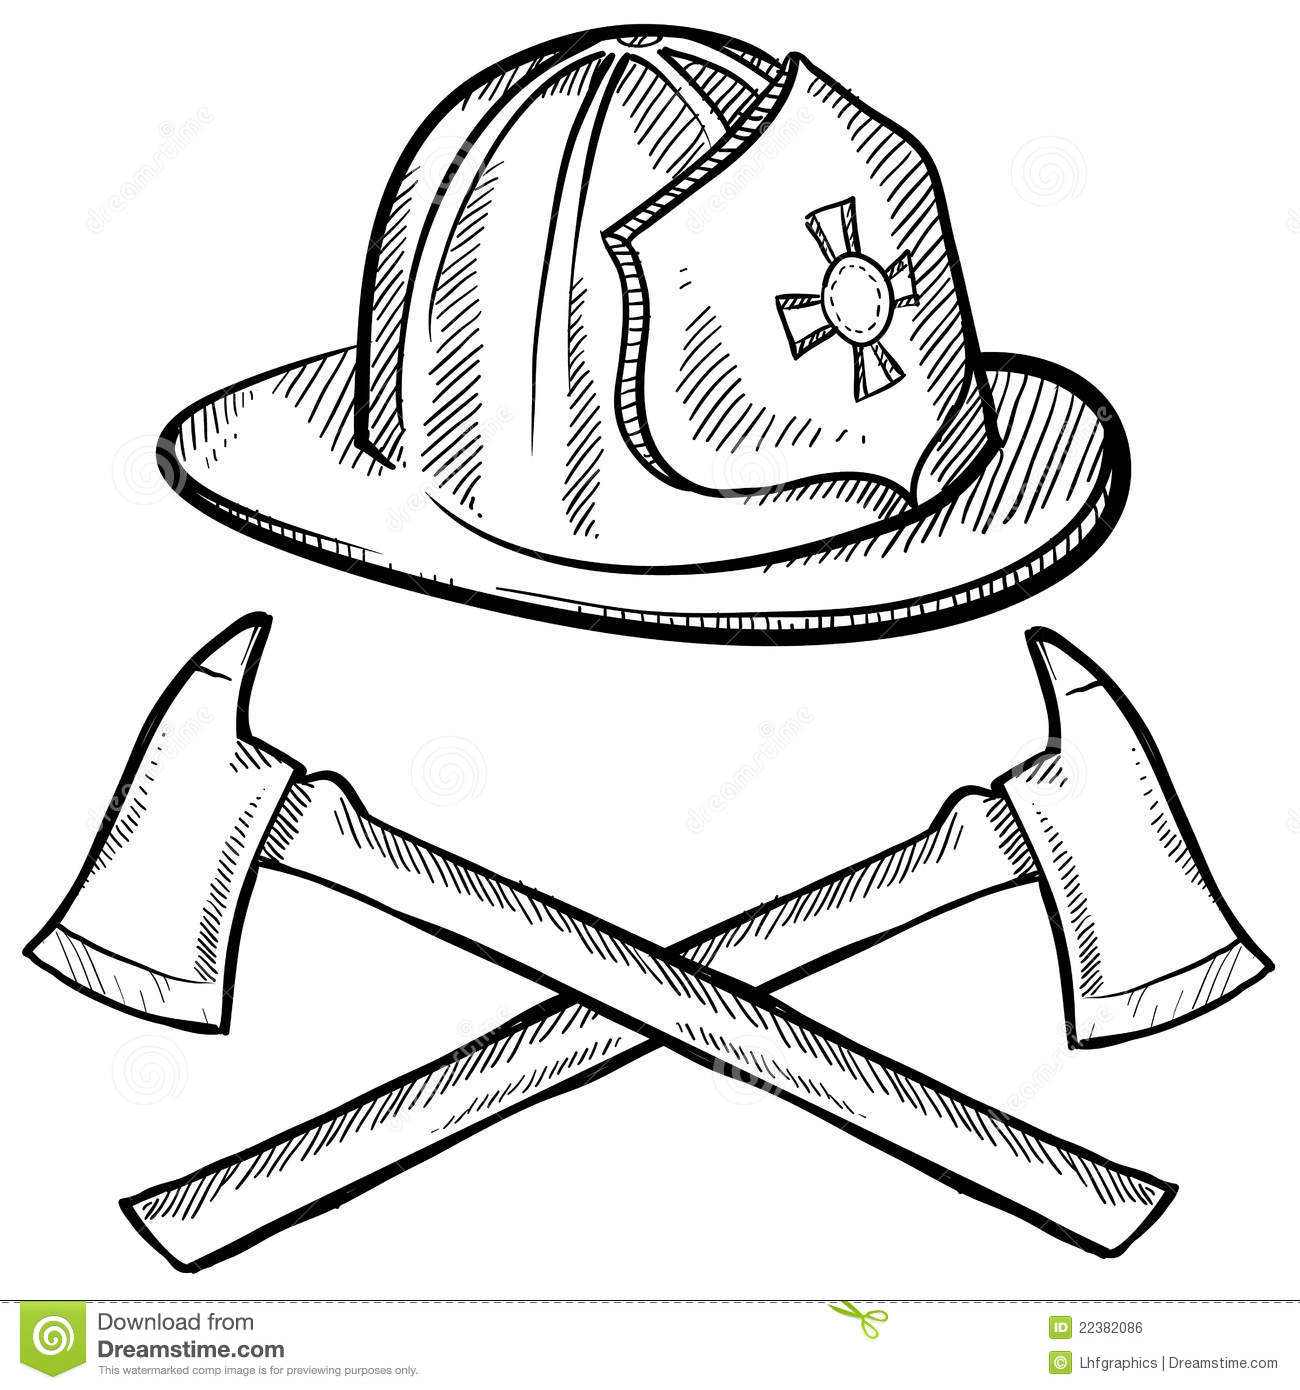 Firefighter S Objects Sketch Stock Vector